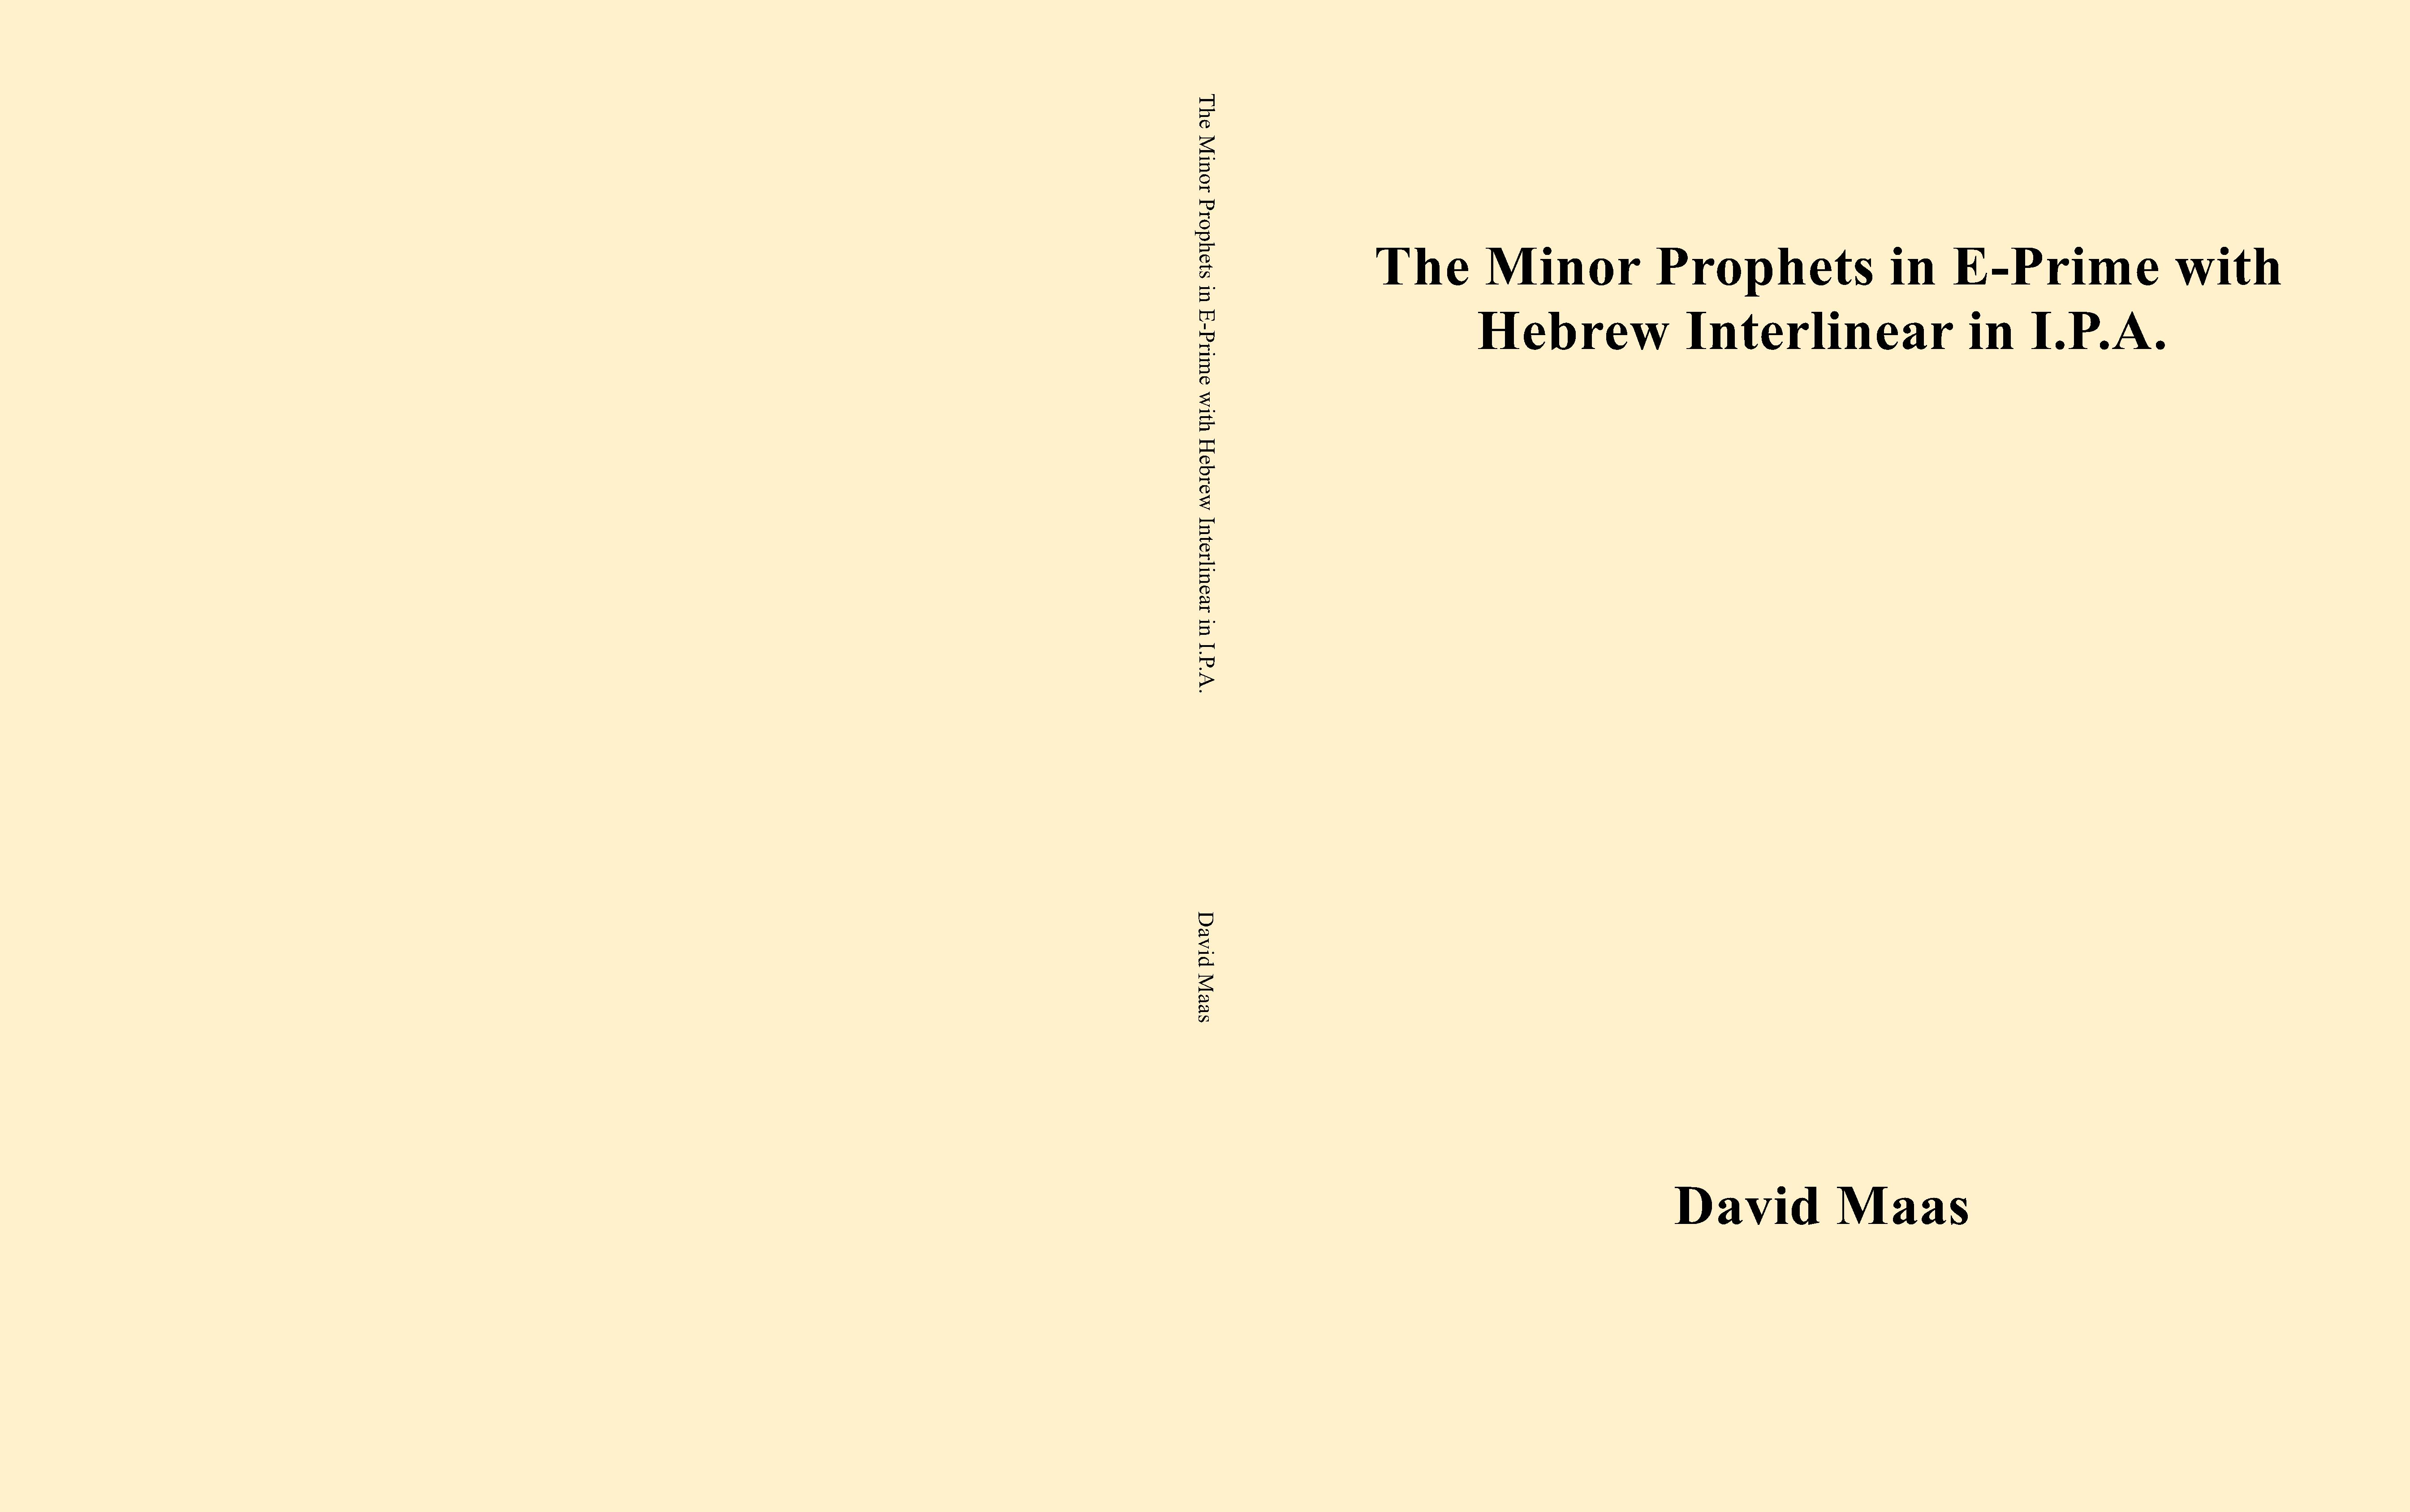 The Minor Prophets in E-Prime with Hebrew Interlinear in I.P.A. cover image